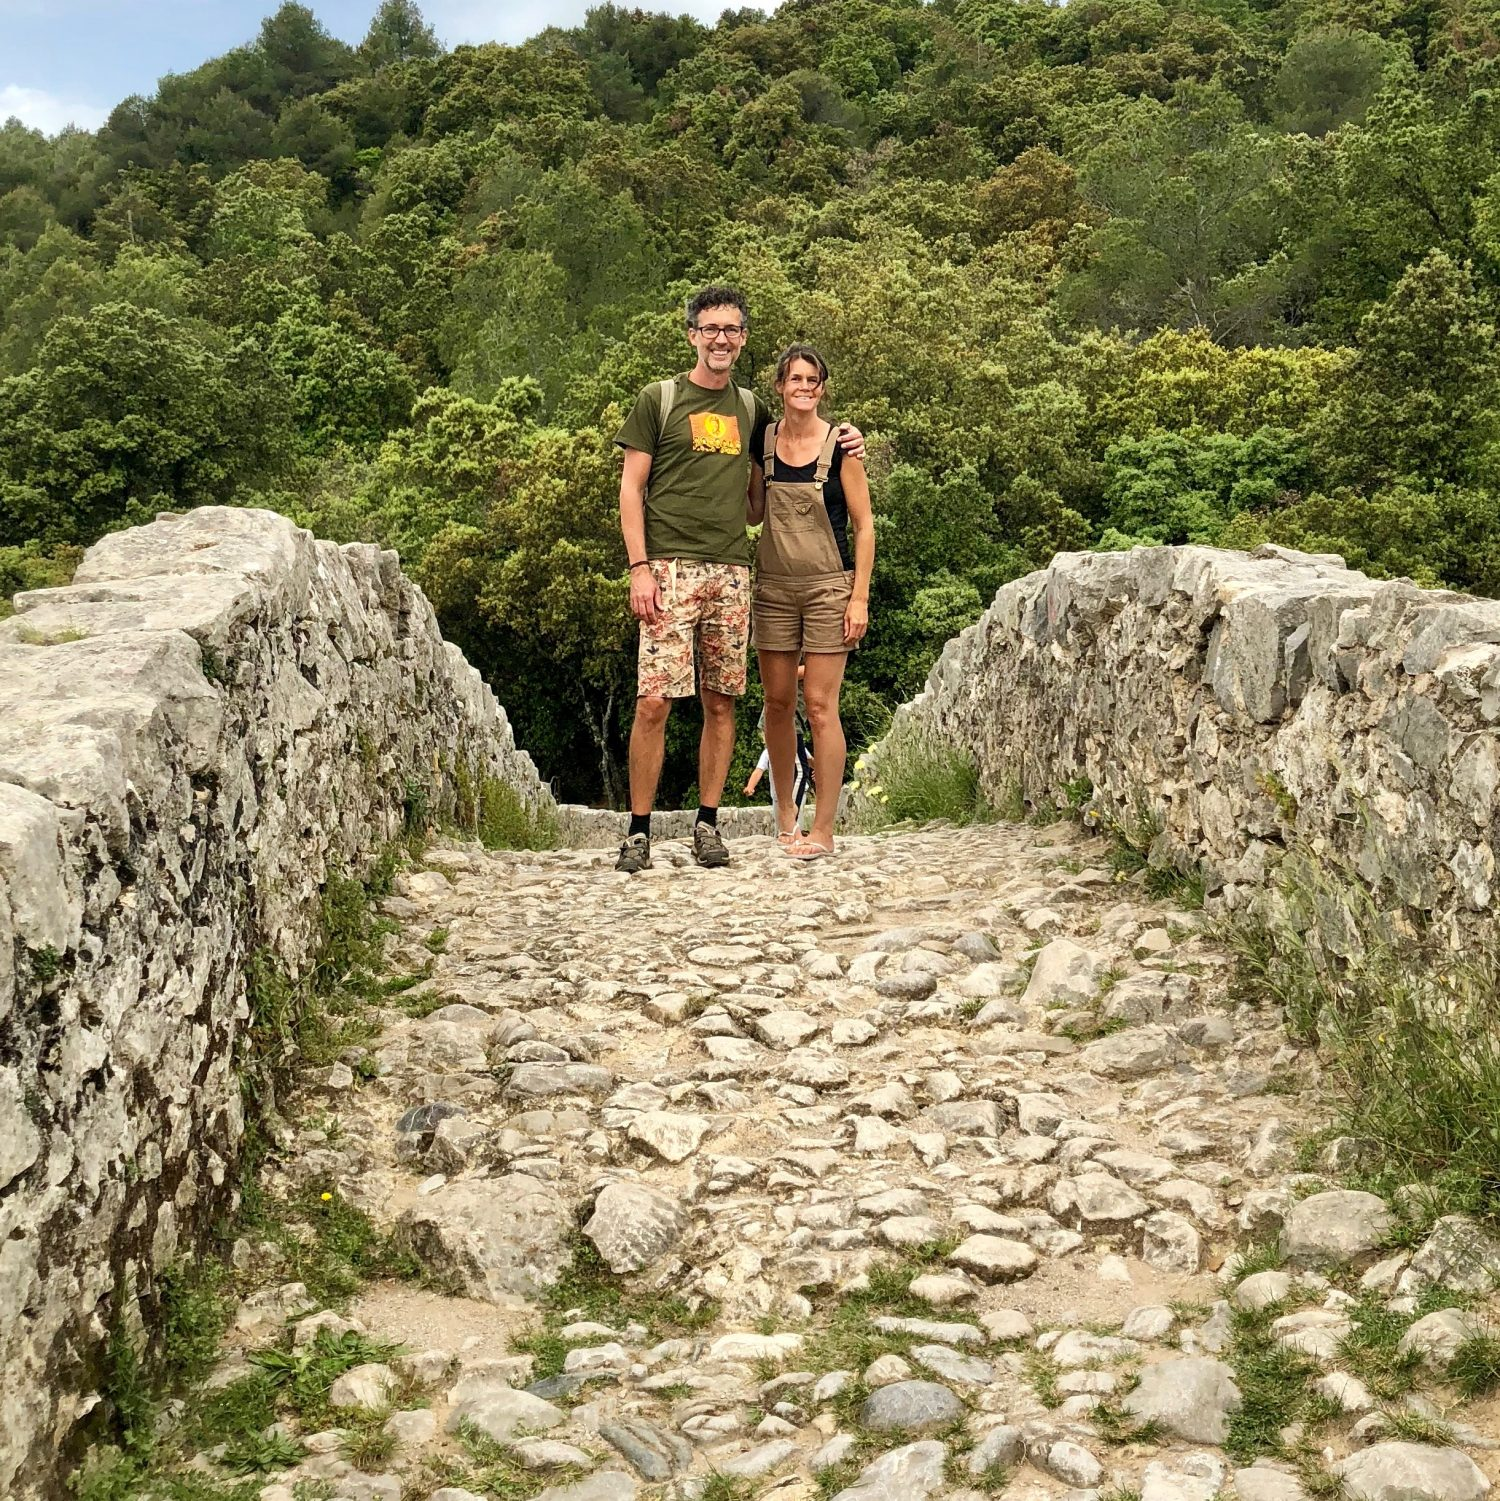 Expedition Family Happiness - Bridge from the 14th century